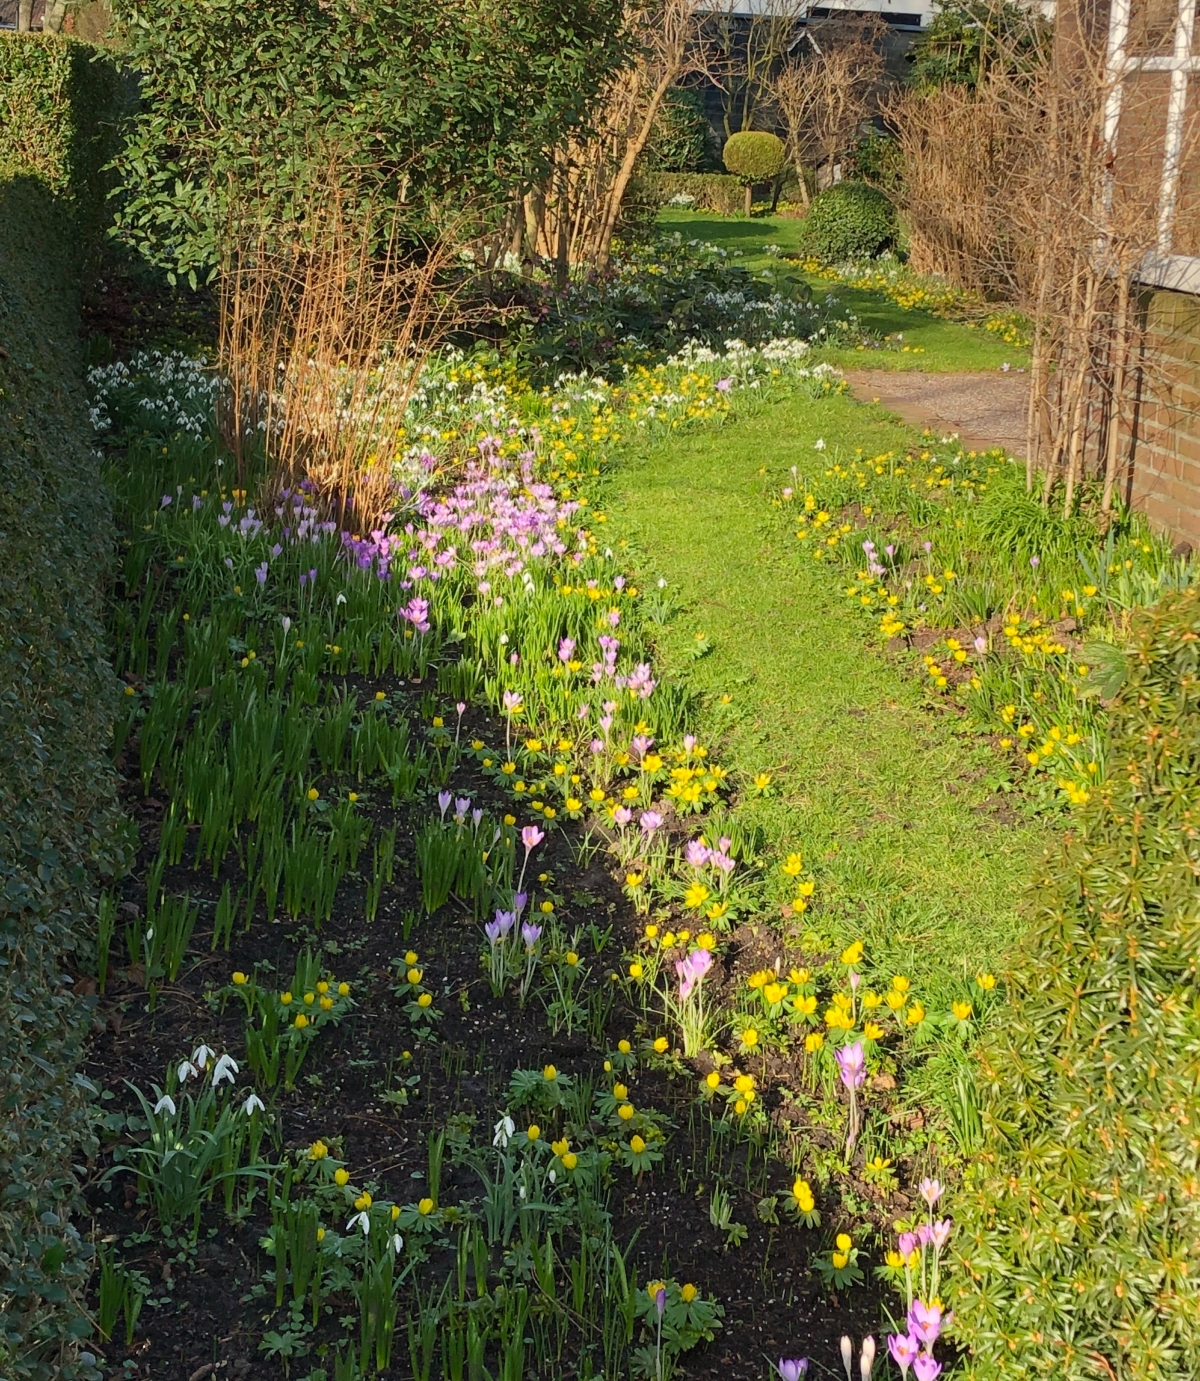 Blooming garden of crocus and snowdrops